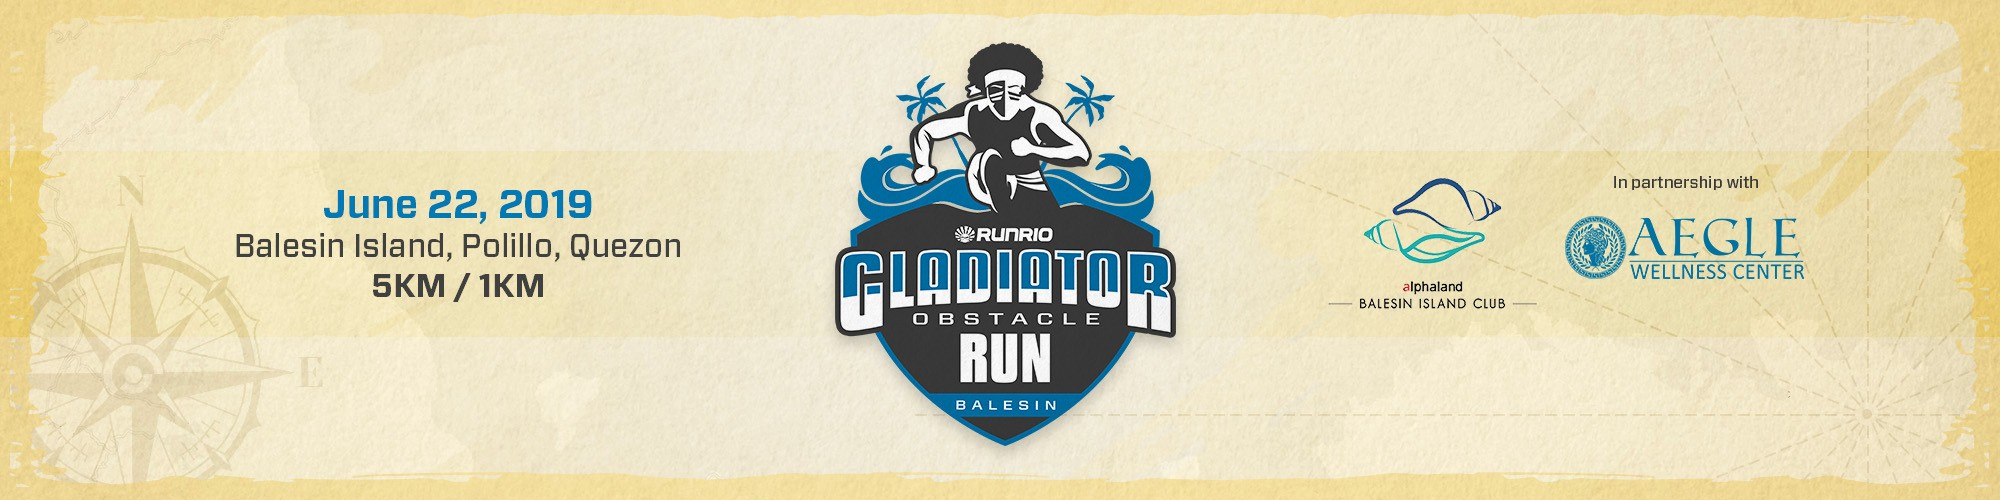 Gladiator Obstacle Run